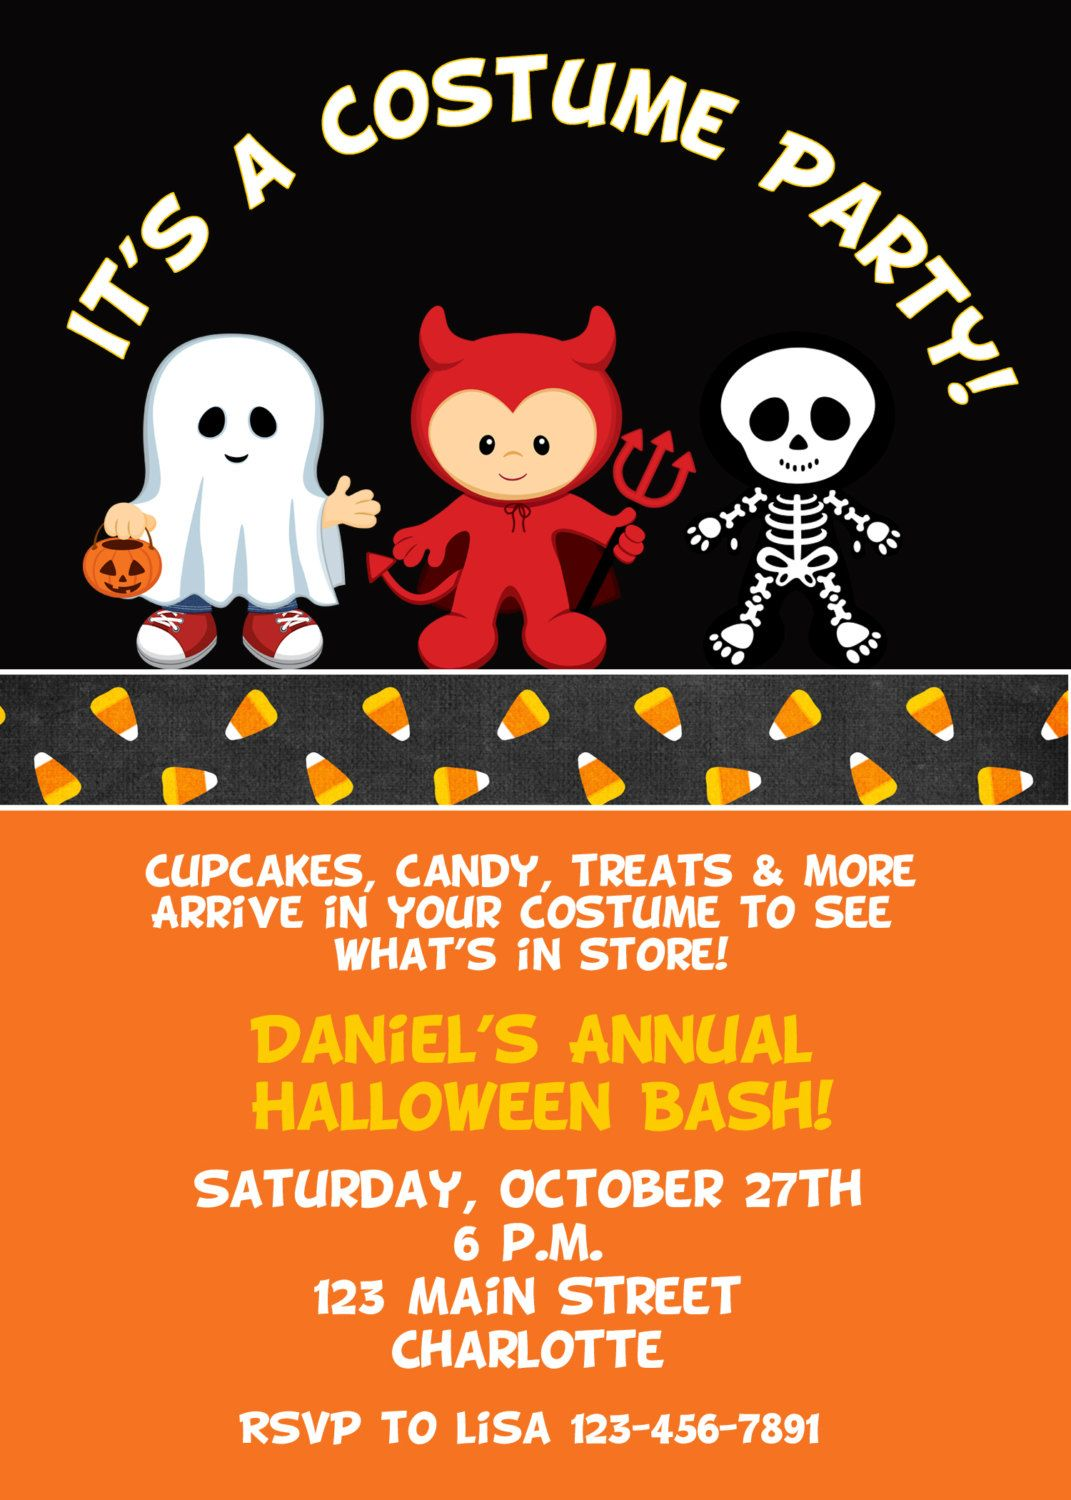 Halloween costume party invitation Halloween costume birthday – Halloween Costume Party Invite